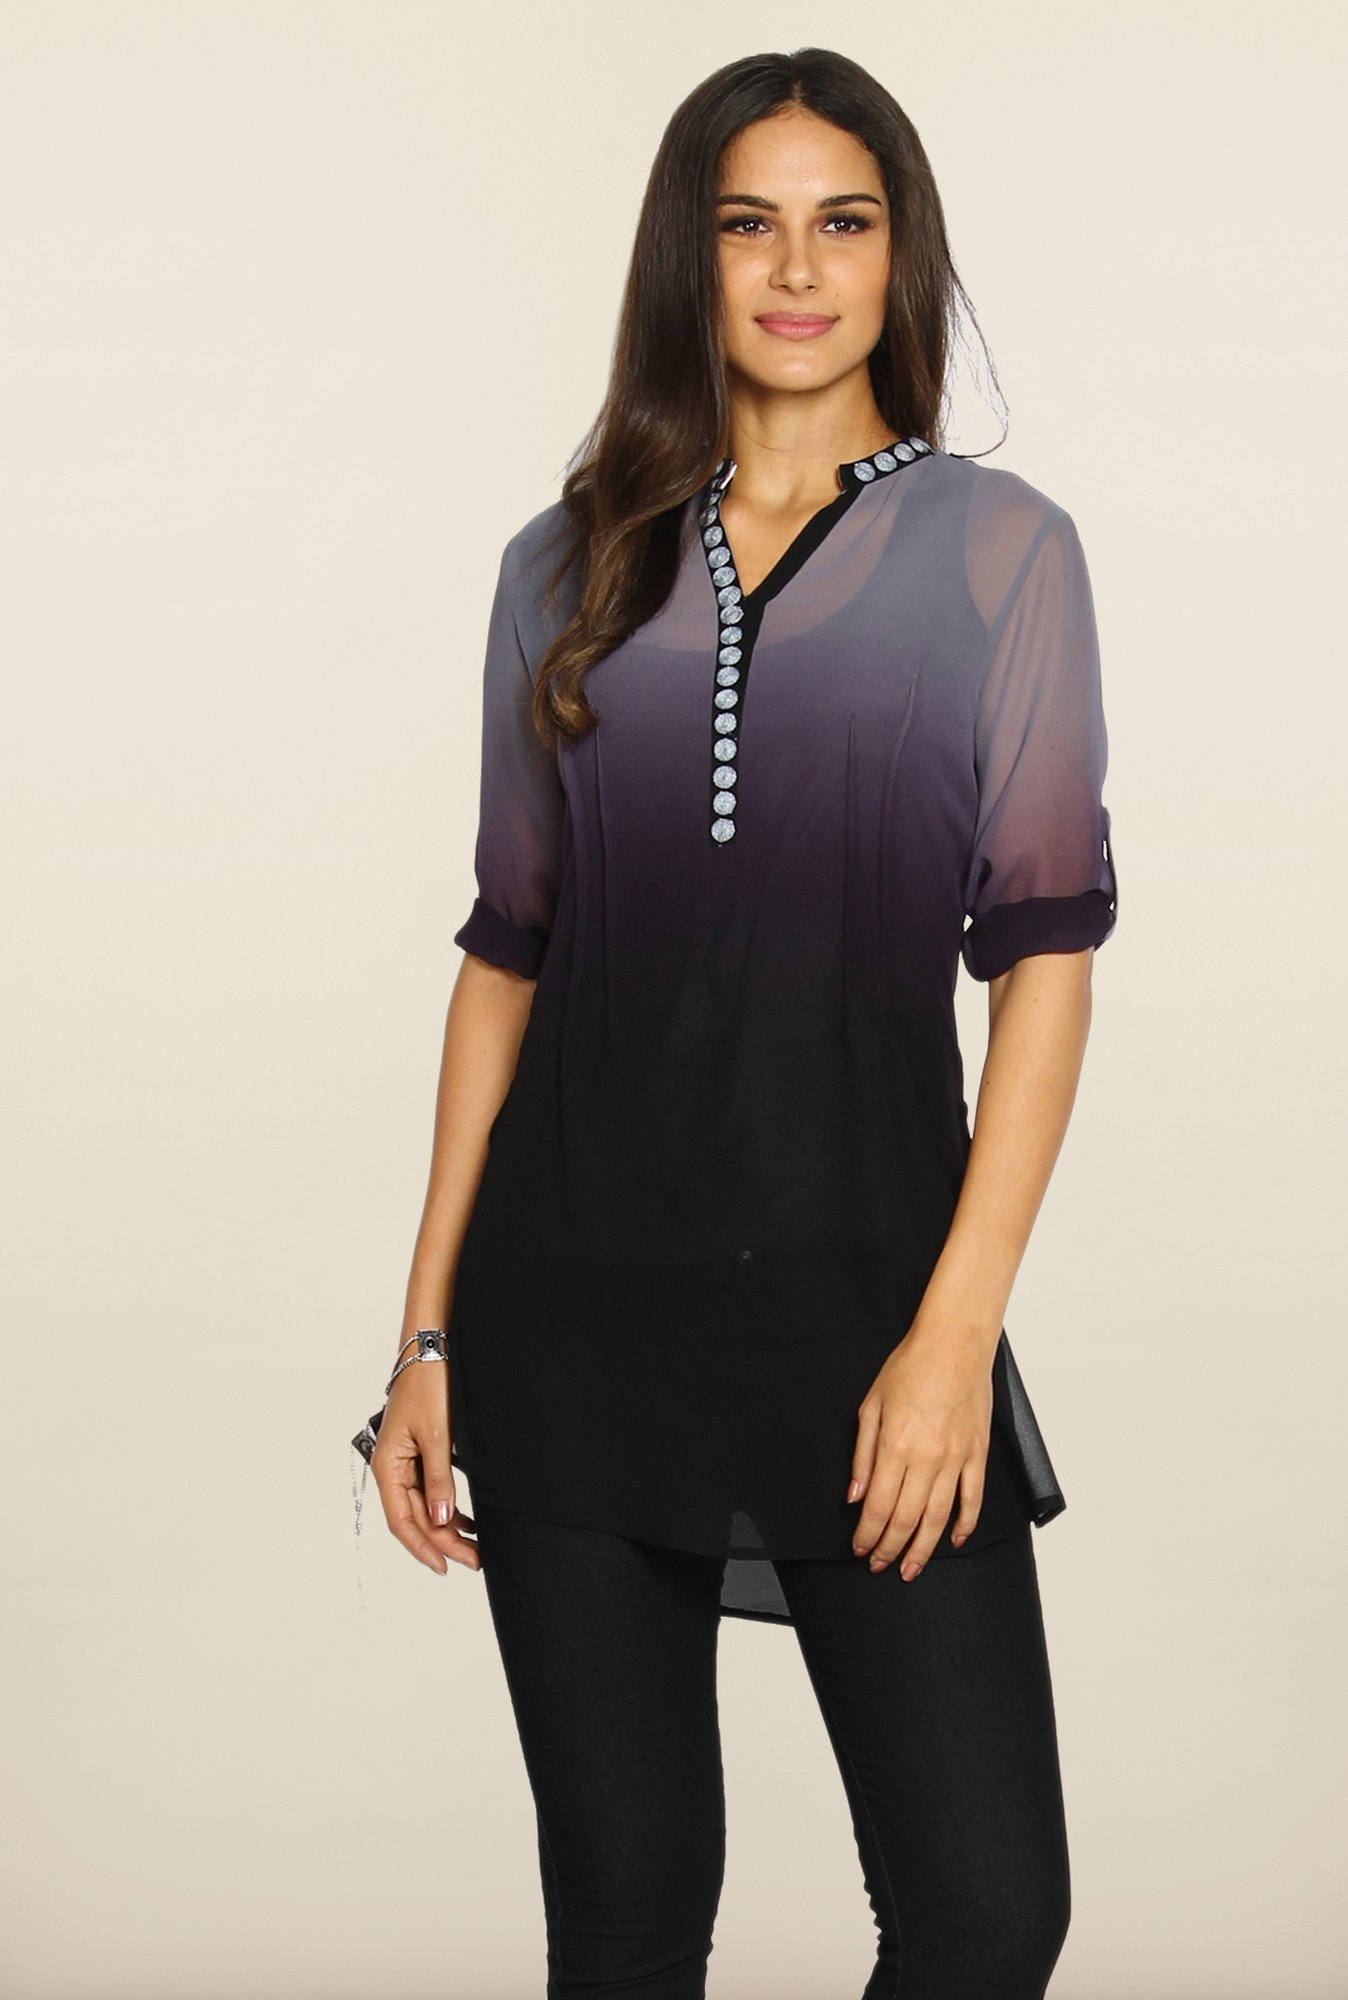 Soch Grey And Dark Purple Ombre-Dyed Tunic